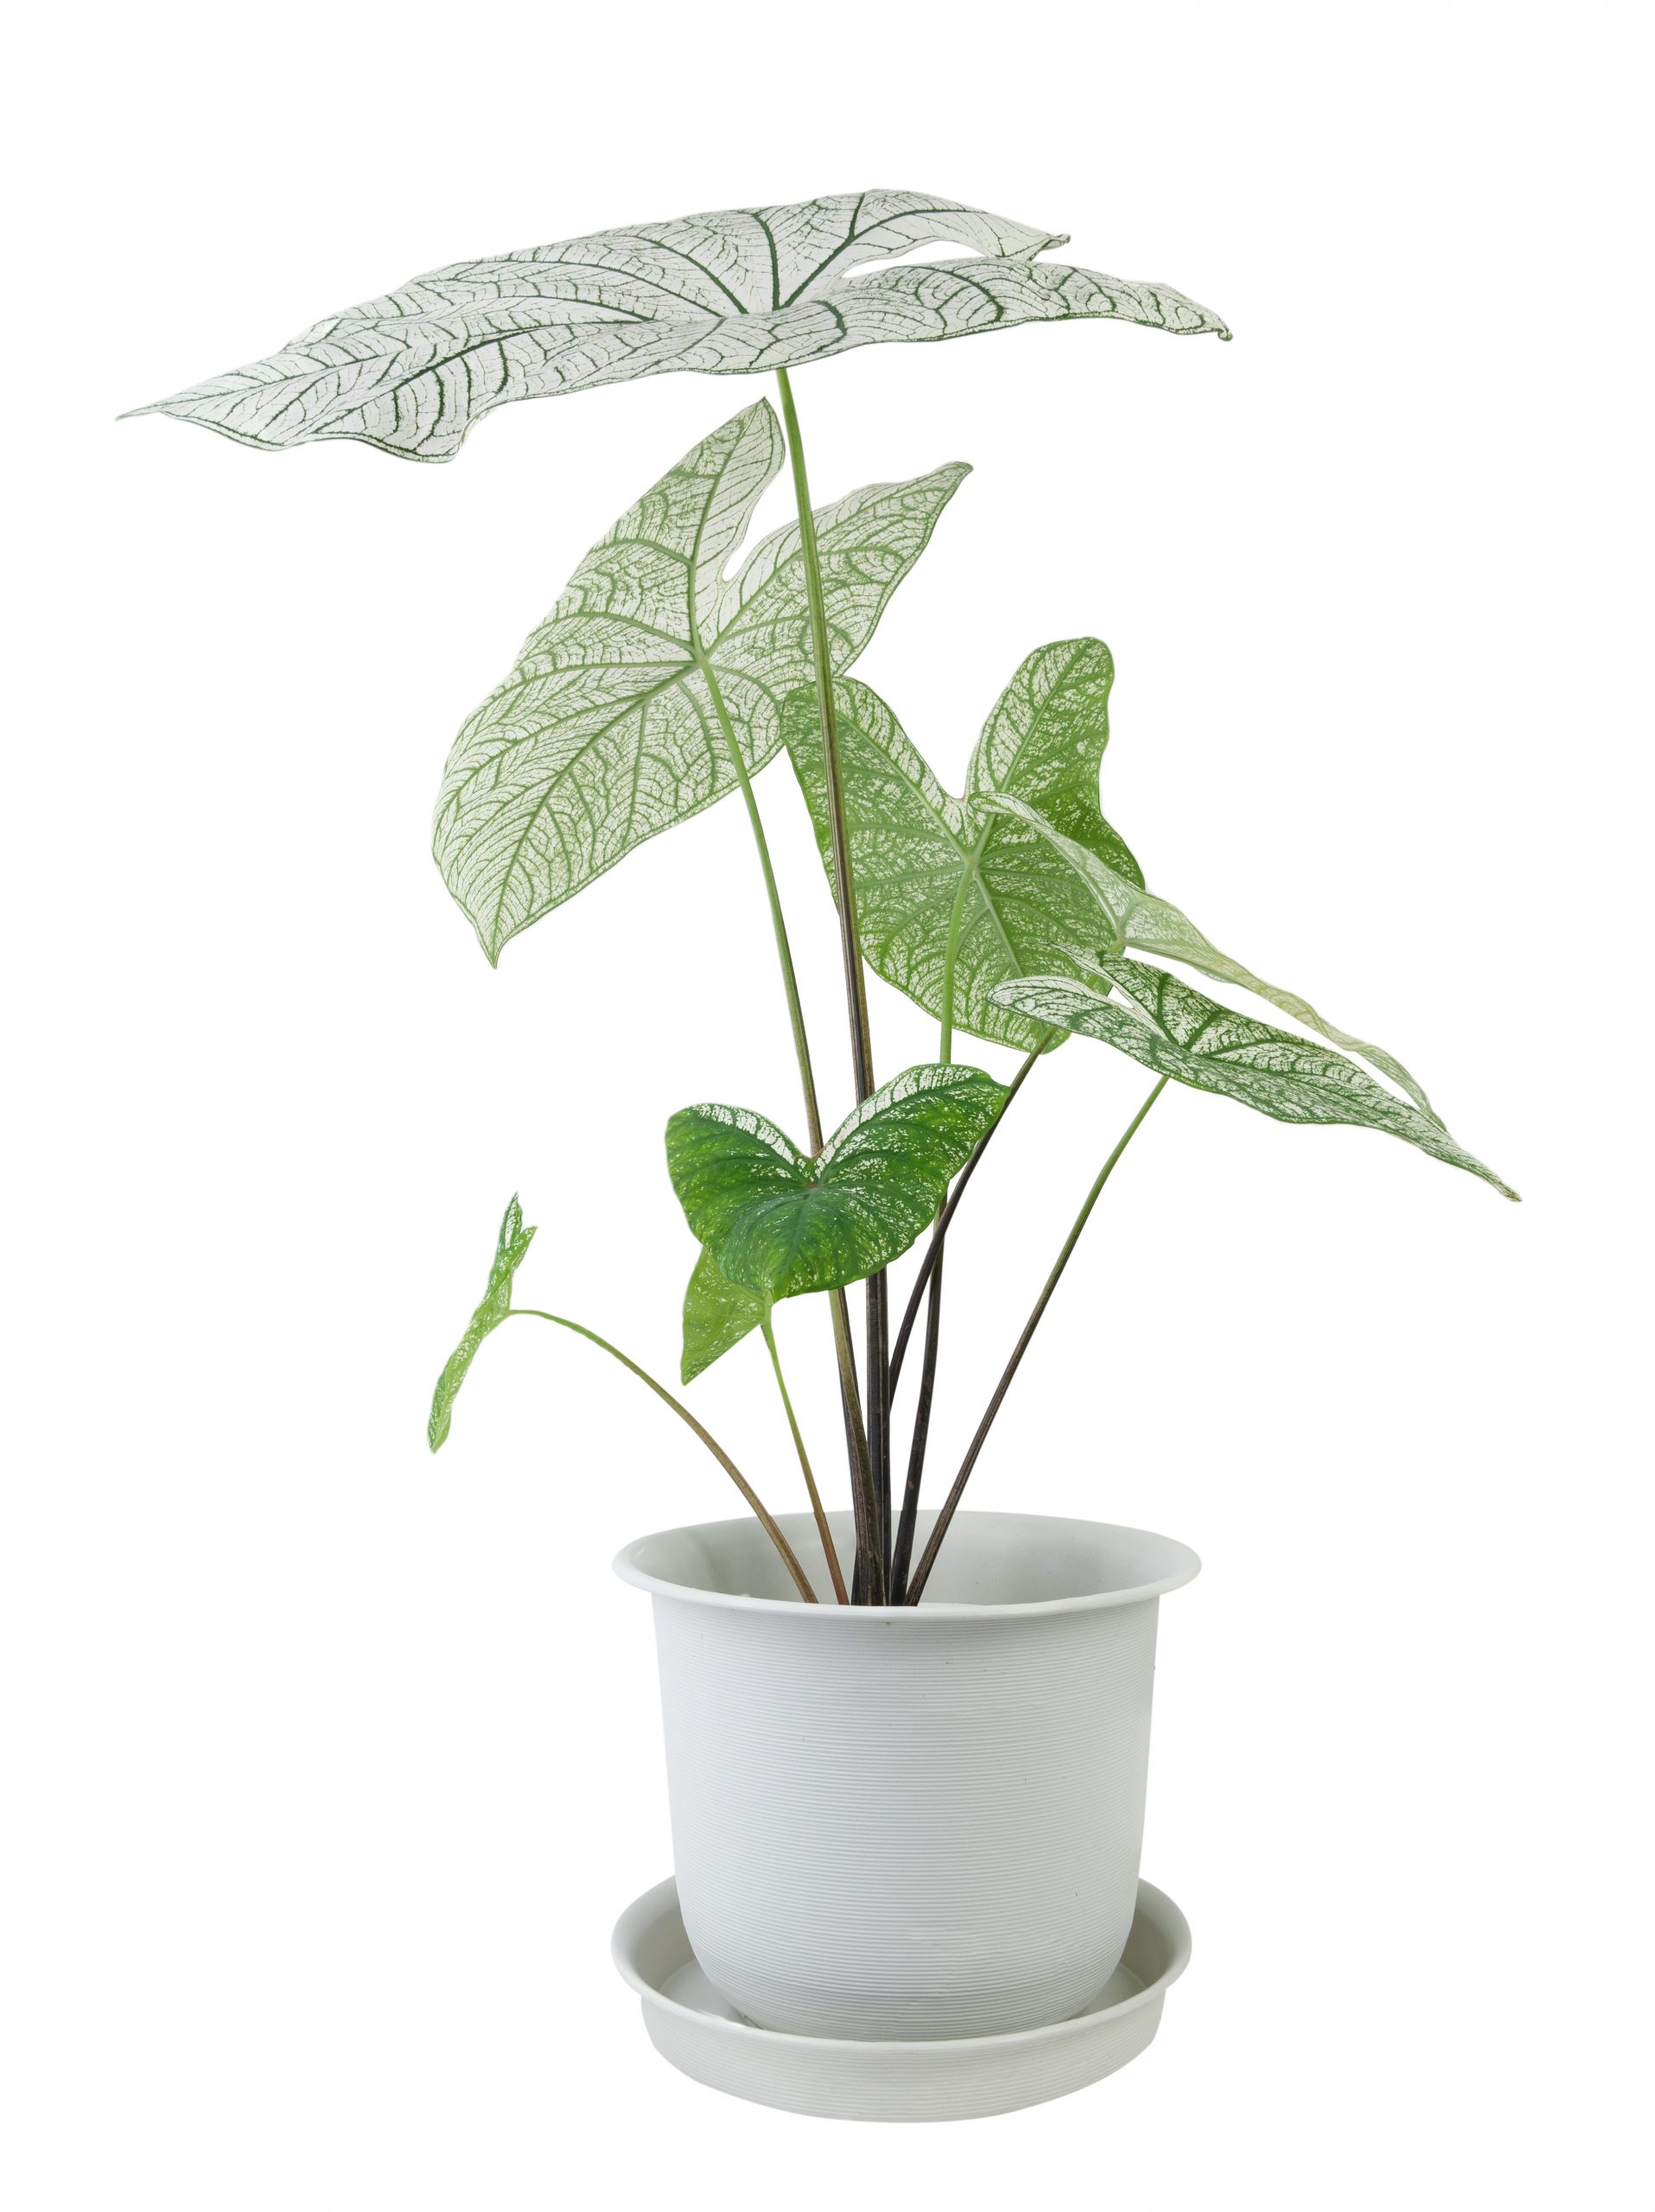 Beautiful Caladium Bicolor Vent,Araceae,Angel wings houseplants  in modern white pot isolated on white background